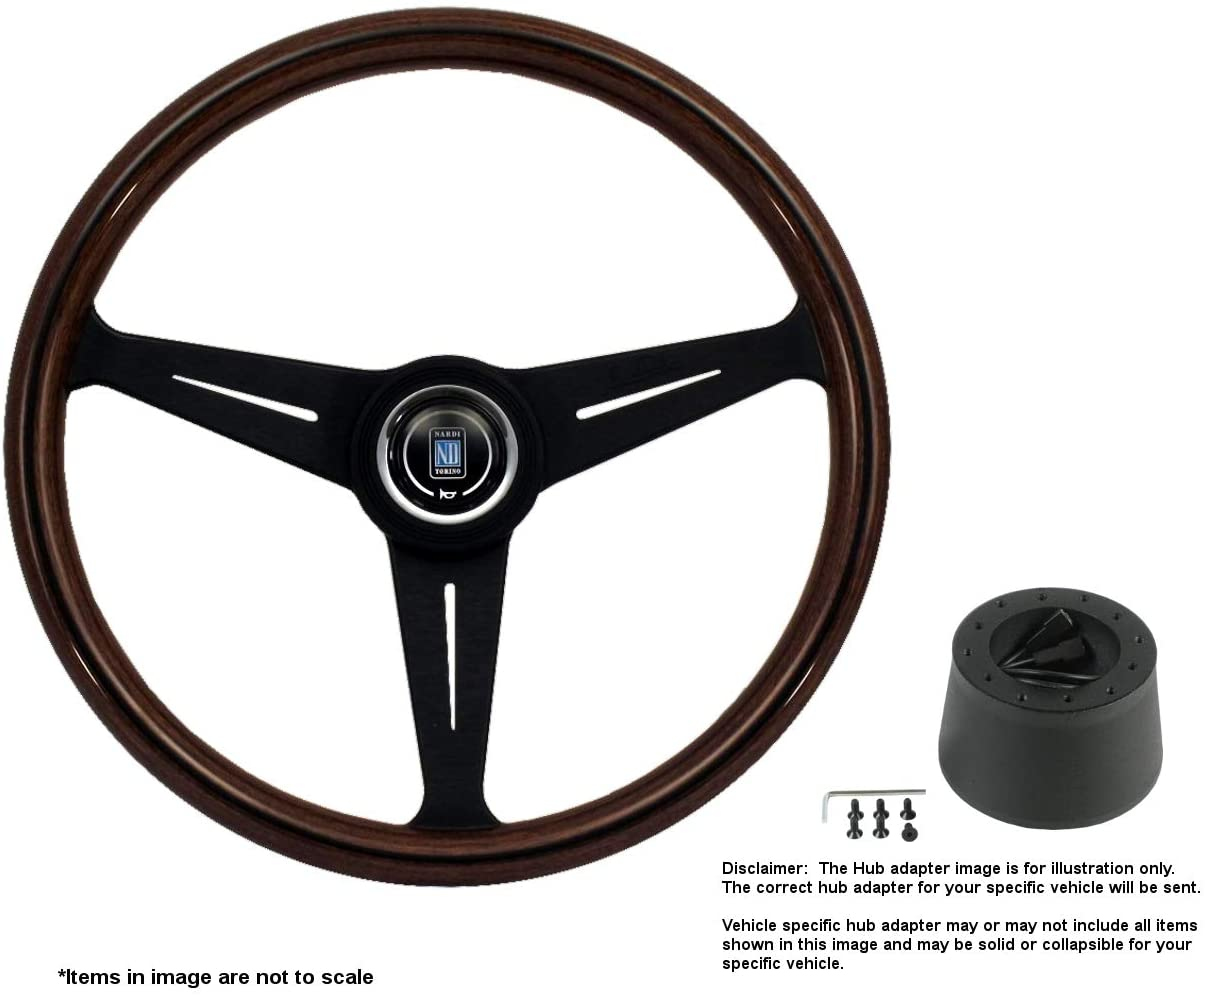 Nardi Classic 390mm (15.35 Inches) Wood Steering Wheel w/Black Spokes and Hub Adapter Compatible With Porsche 356A Part # 5051.39.2300 + .3804